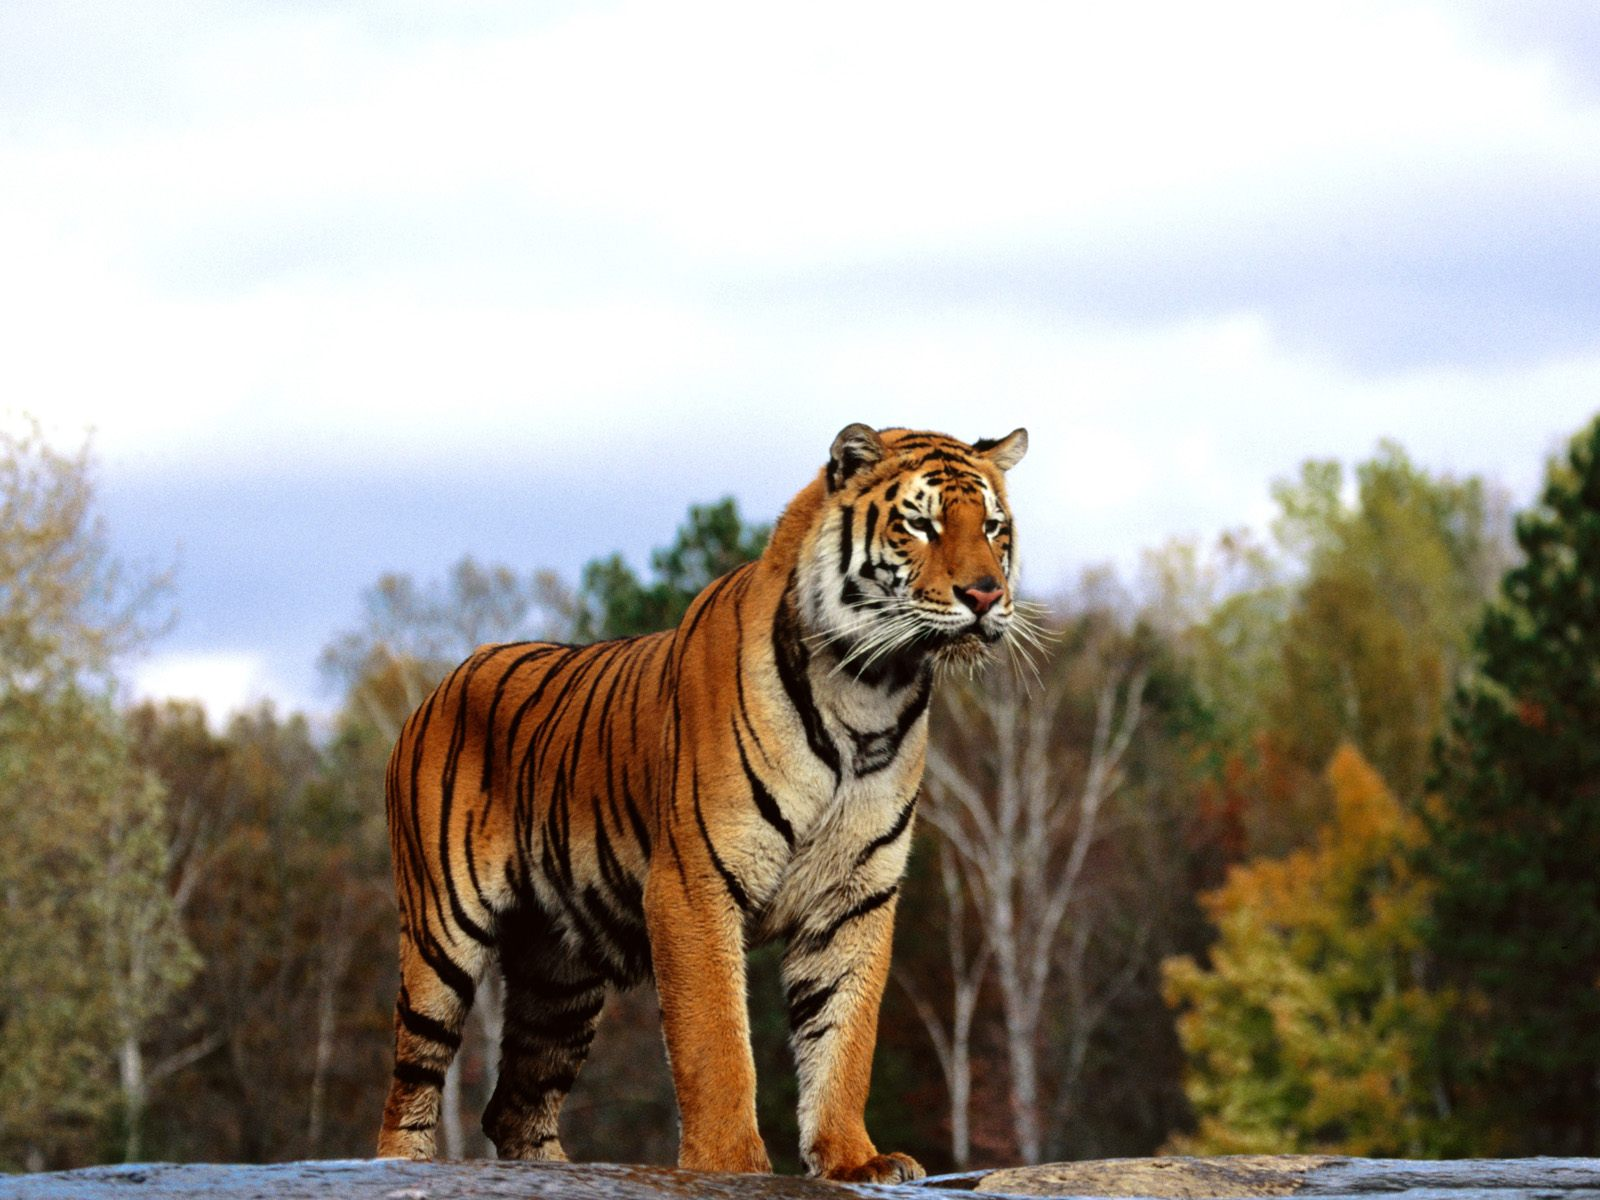 Bengal tiger hd wallpapers - Tiger hd wallpaper for pc ...